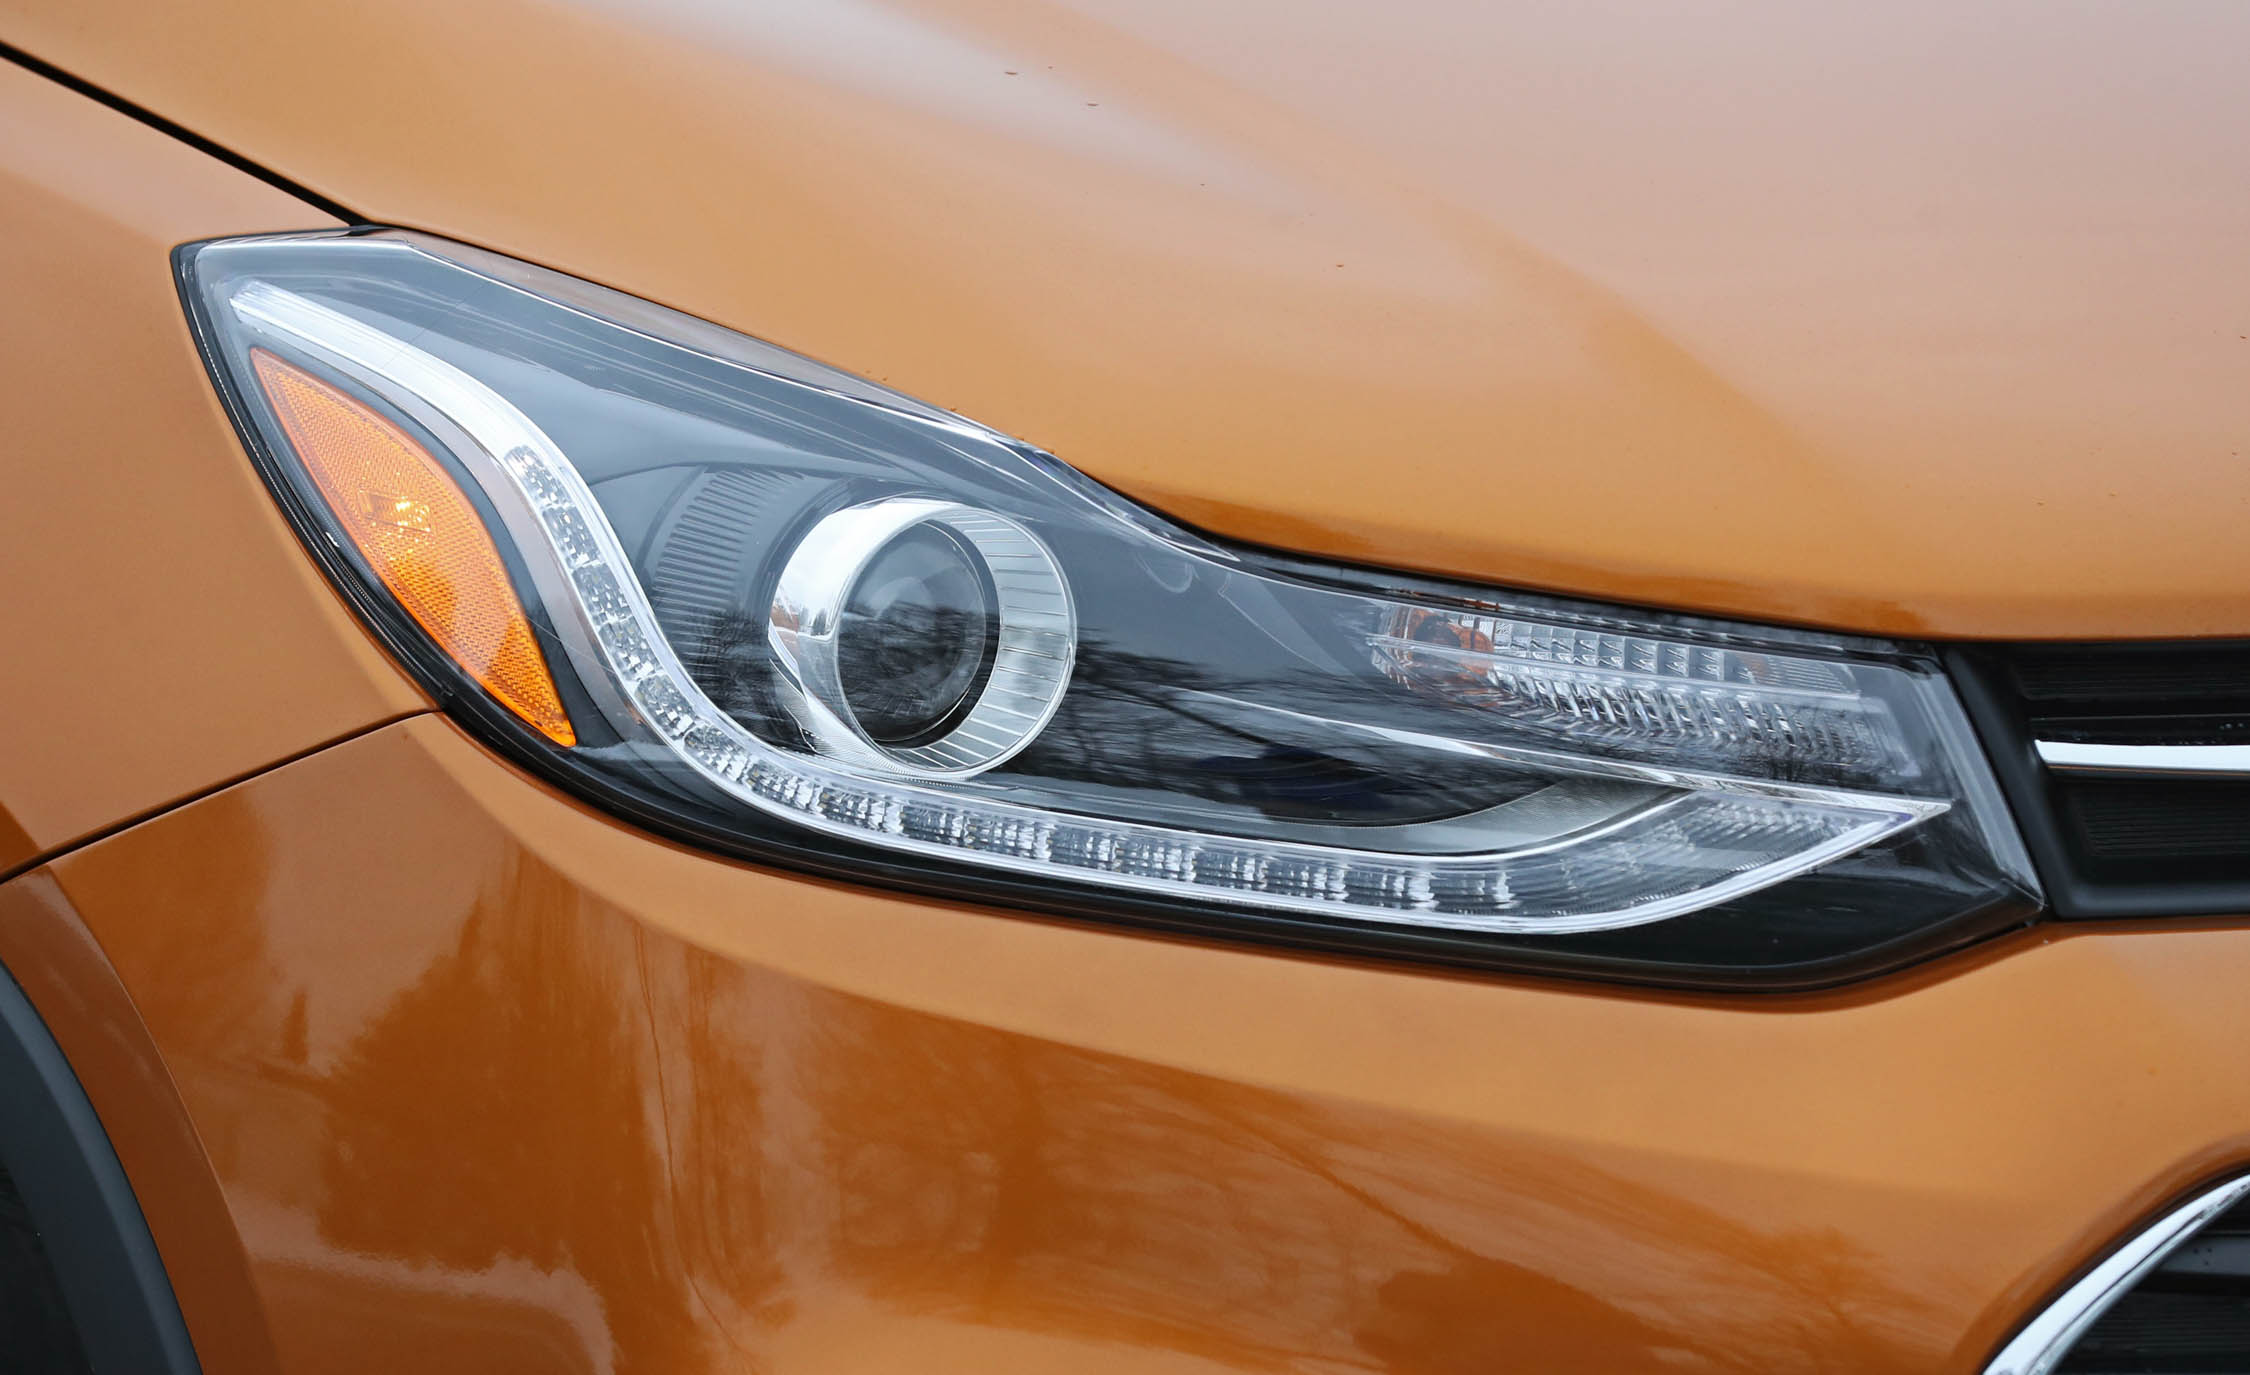 2017 Chevrolet Trax Exterior View Headlamp (Photo 10 of 47)